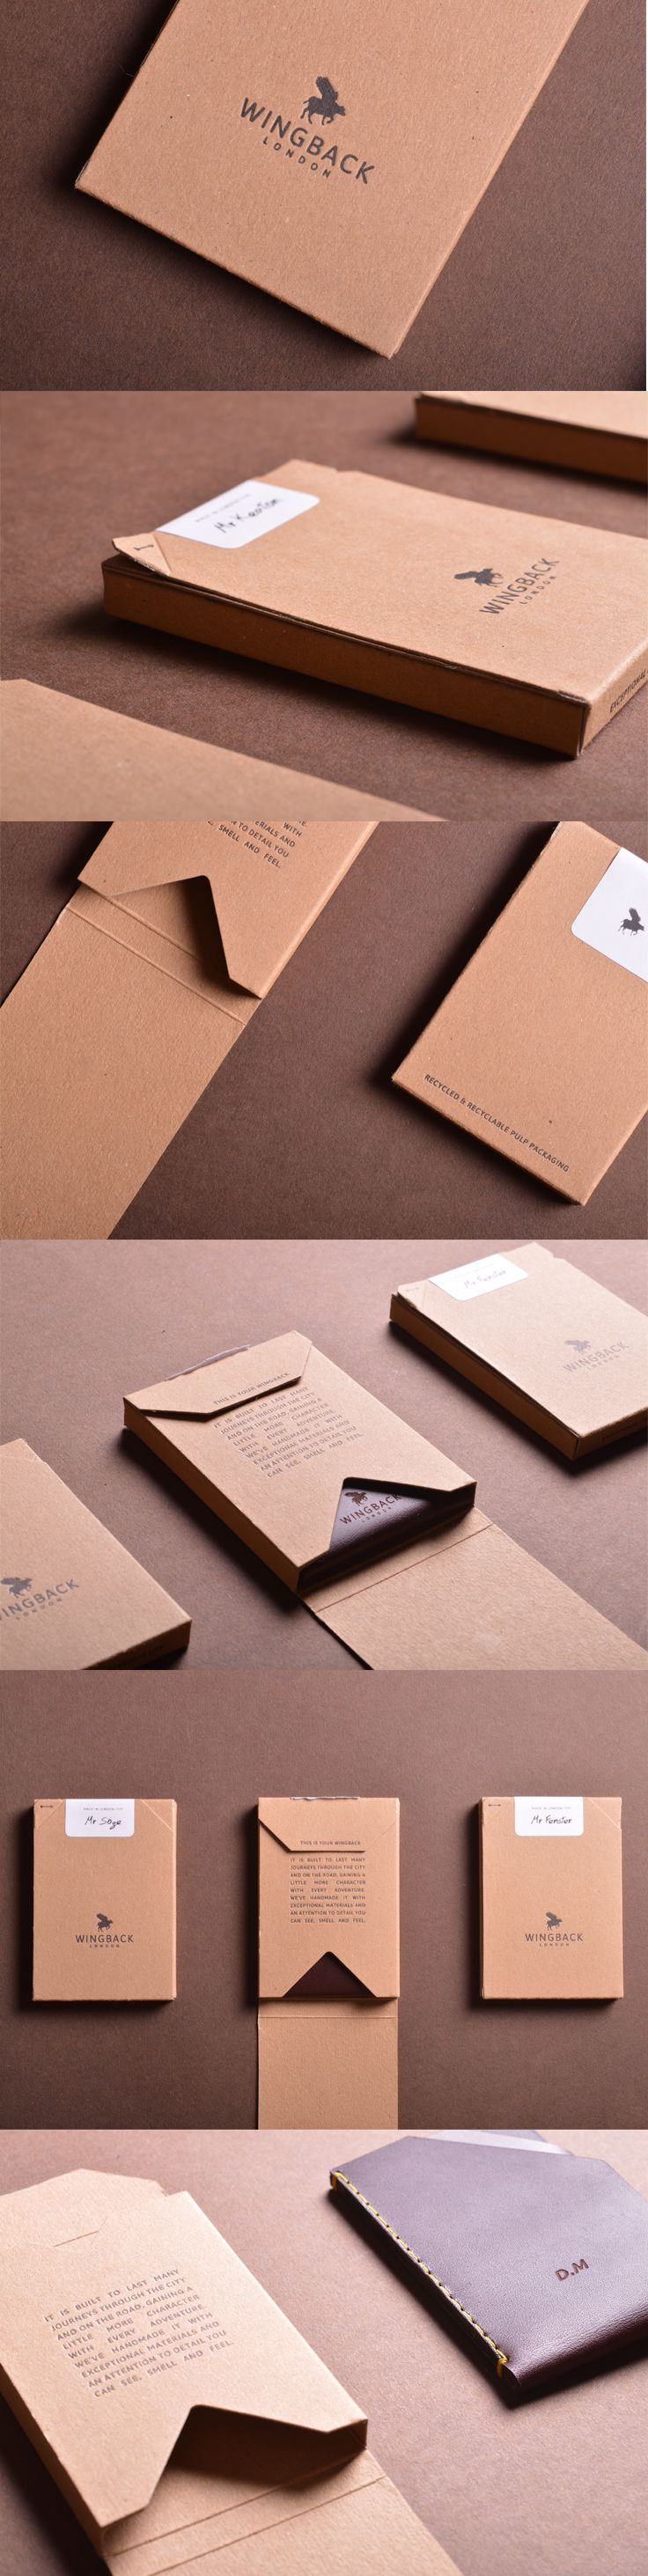 New Packaging design for small Leather goods by Wingback. Made from recycled and recyclable pulp.